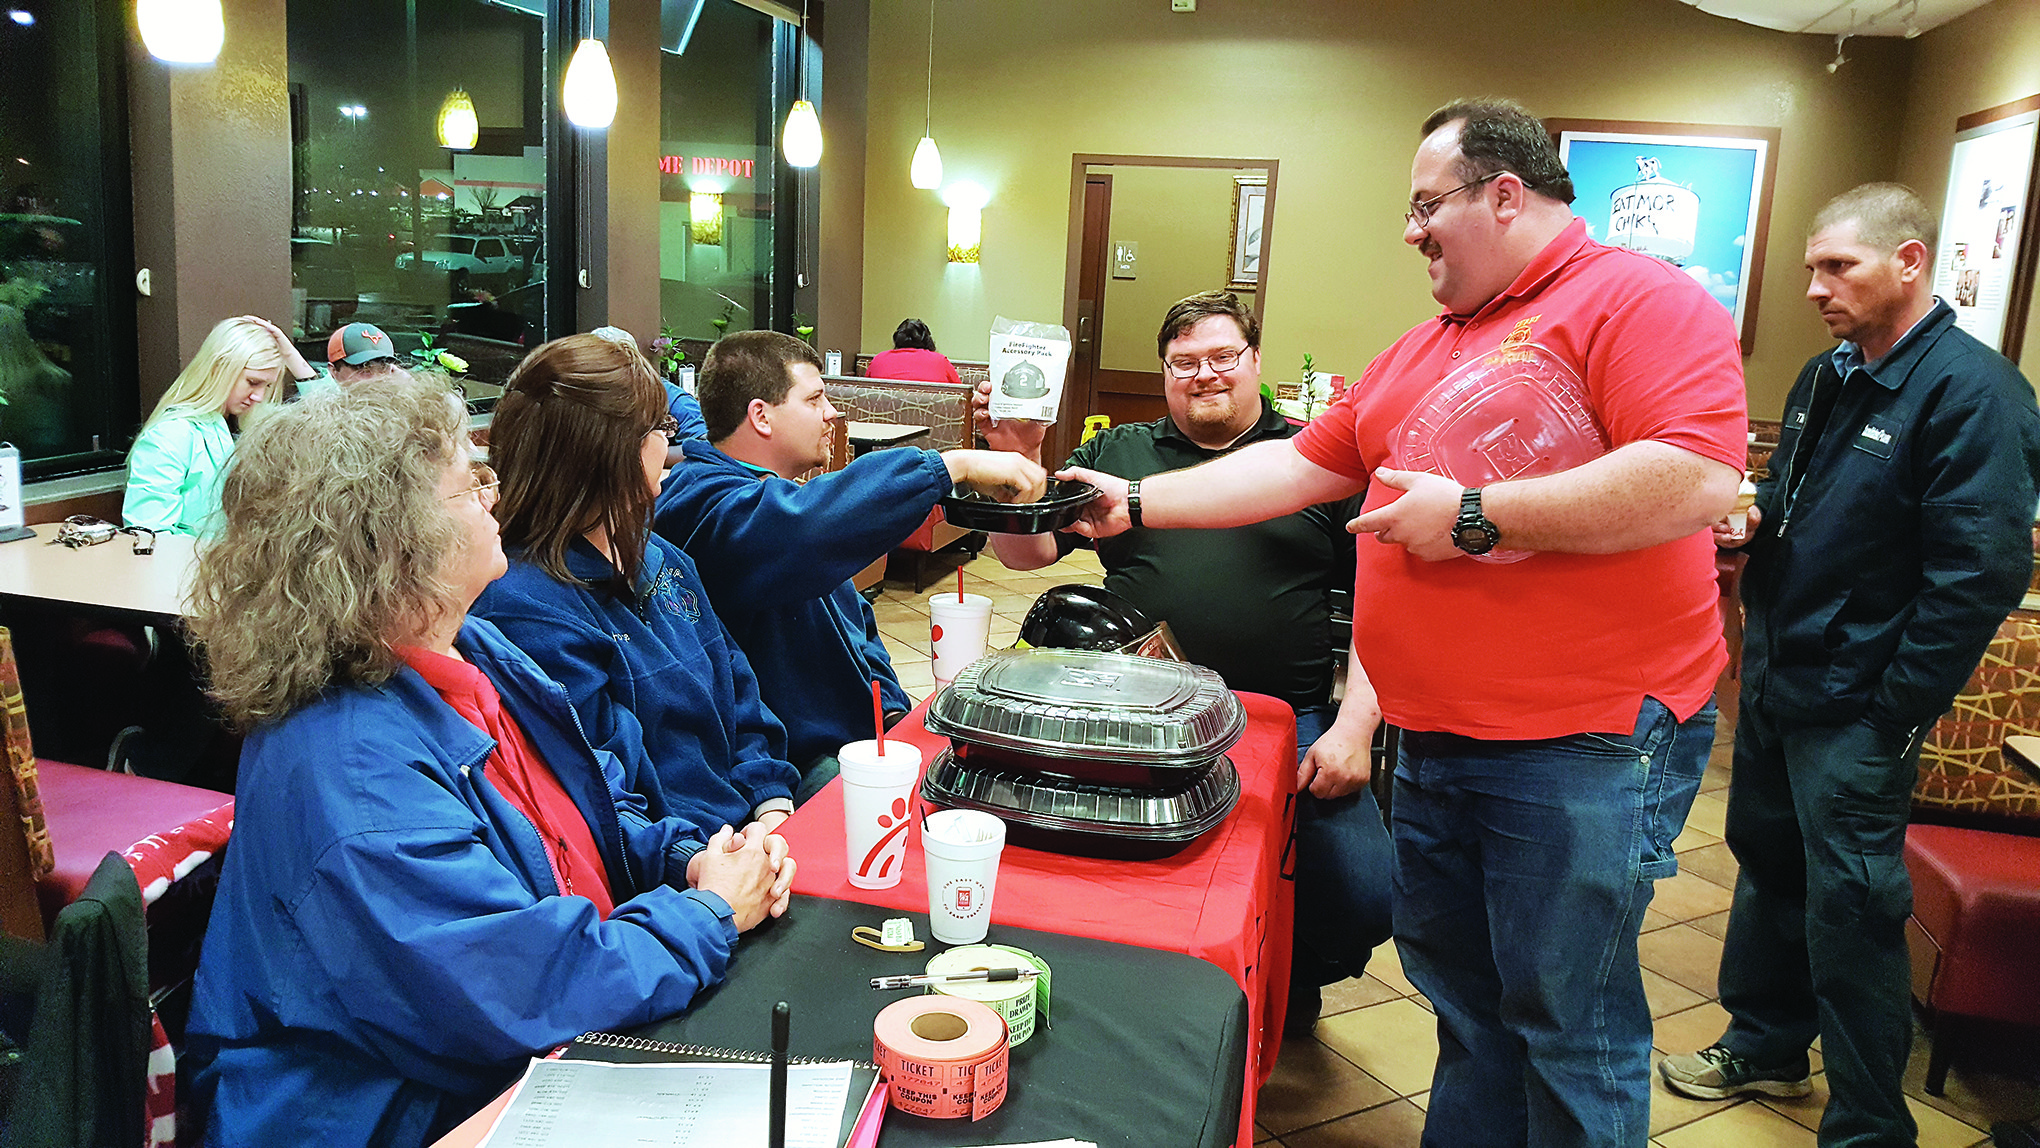 Members of Curry Fire Rescue draw for the door prizes donated by Curry Fire Rescue and Chik-fil-A for the second Anniversary Celebration of the Chik-fil-A Firefighter Appreciation Day. Winners of the door prizes were: Chik-fil-A Fire Department Party  went to Becky McCullar with Thach Volunteer Fire Department; Chik-fil-A Meals for a year went to David Box with Dora Fire Rescue; Firefighter Accessory Pack went to Ottis Burttram with Saragossa Volunteer Fire Rescue; and the Firefighter Helmet Light went to Kimberly Martin with Town Creek Volunteer Fire Department.